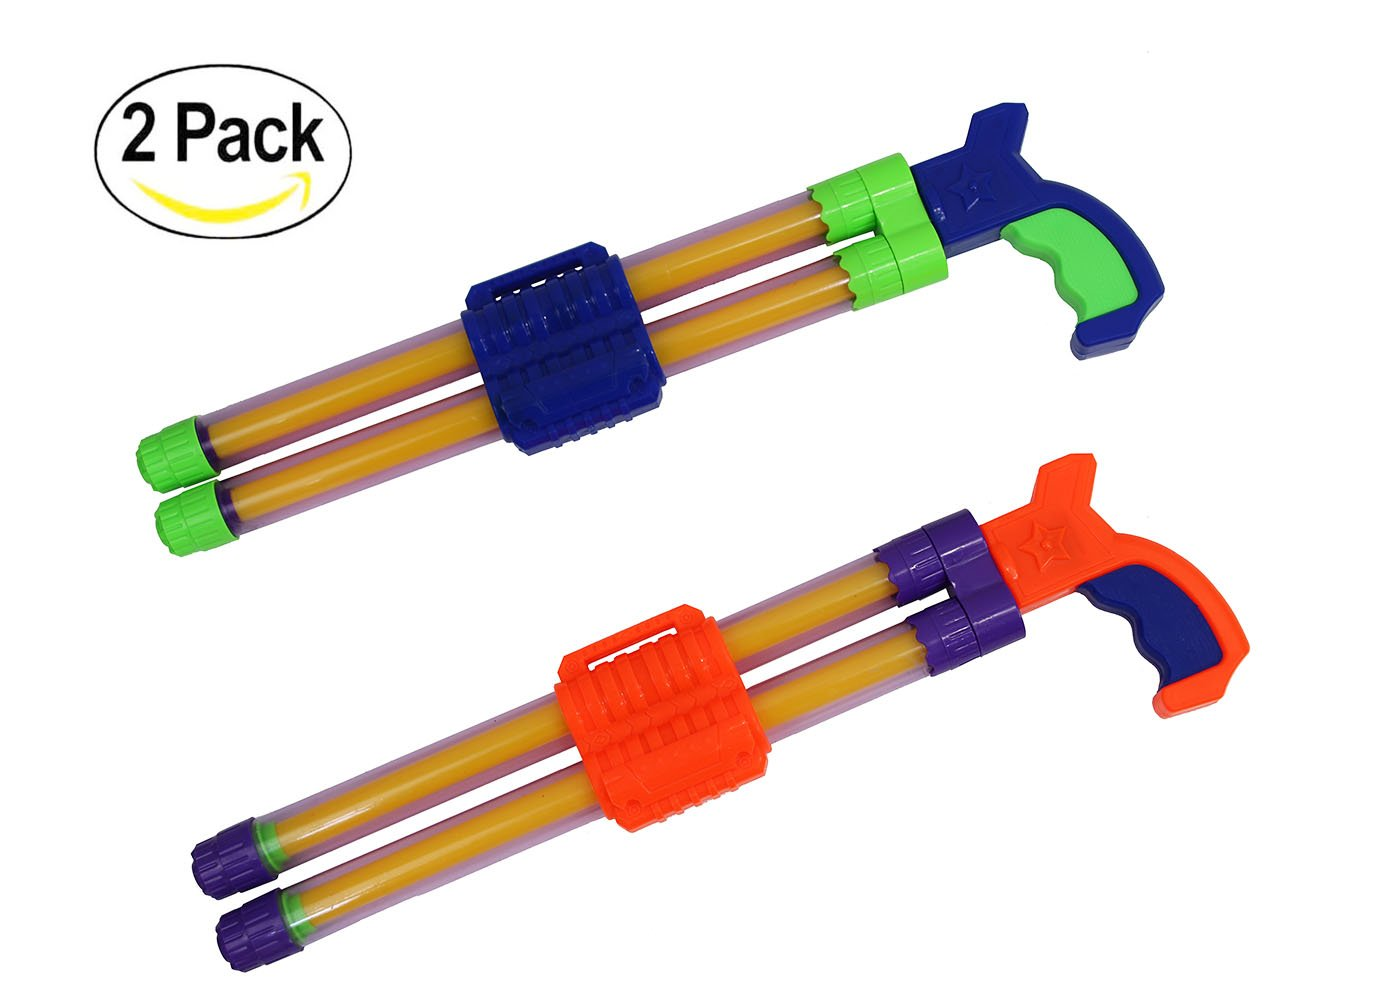 Ouzong 2 Pack Double Stream Machine Water Launcher With Non-Slip Holder For Kids Adults - 17 Inch Powerful Water Gun